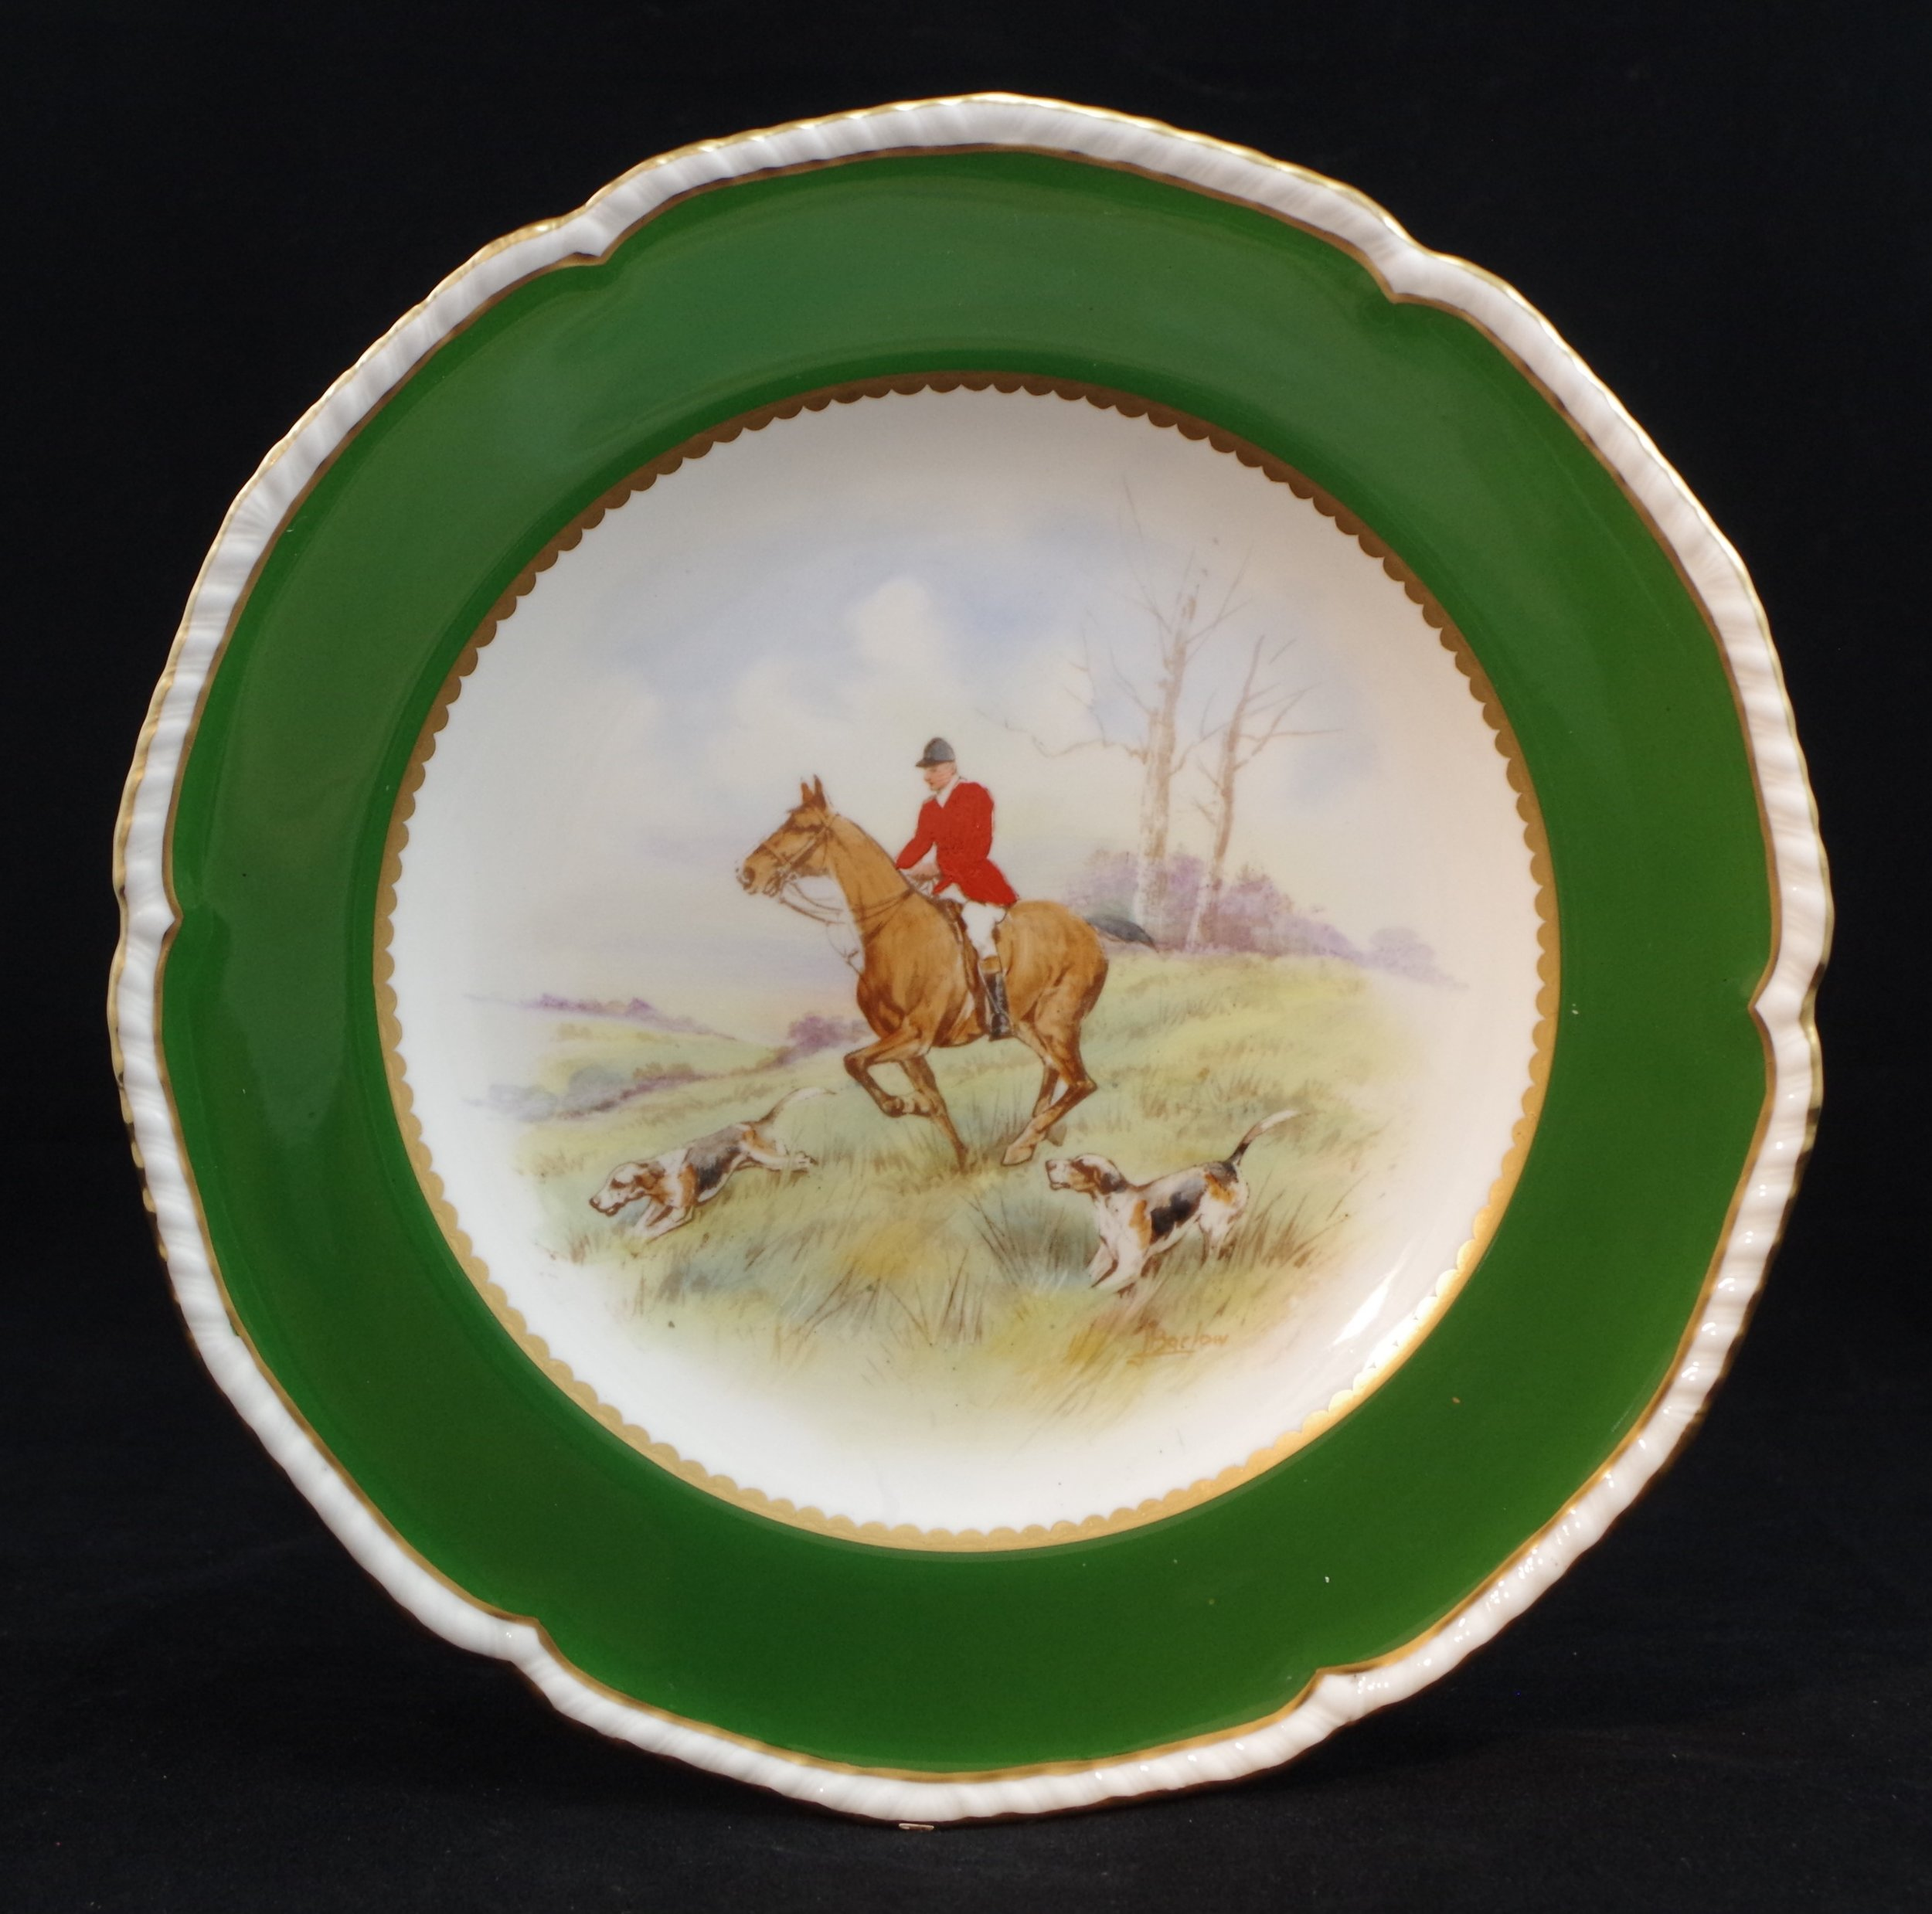 royal-crown-derby-gadroon-green-ground-hunting-scene-1